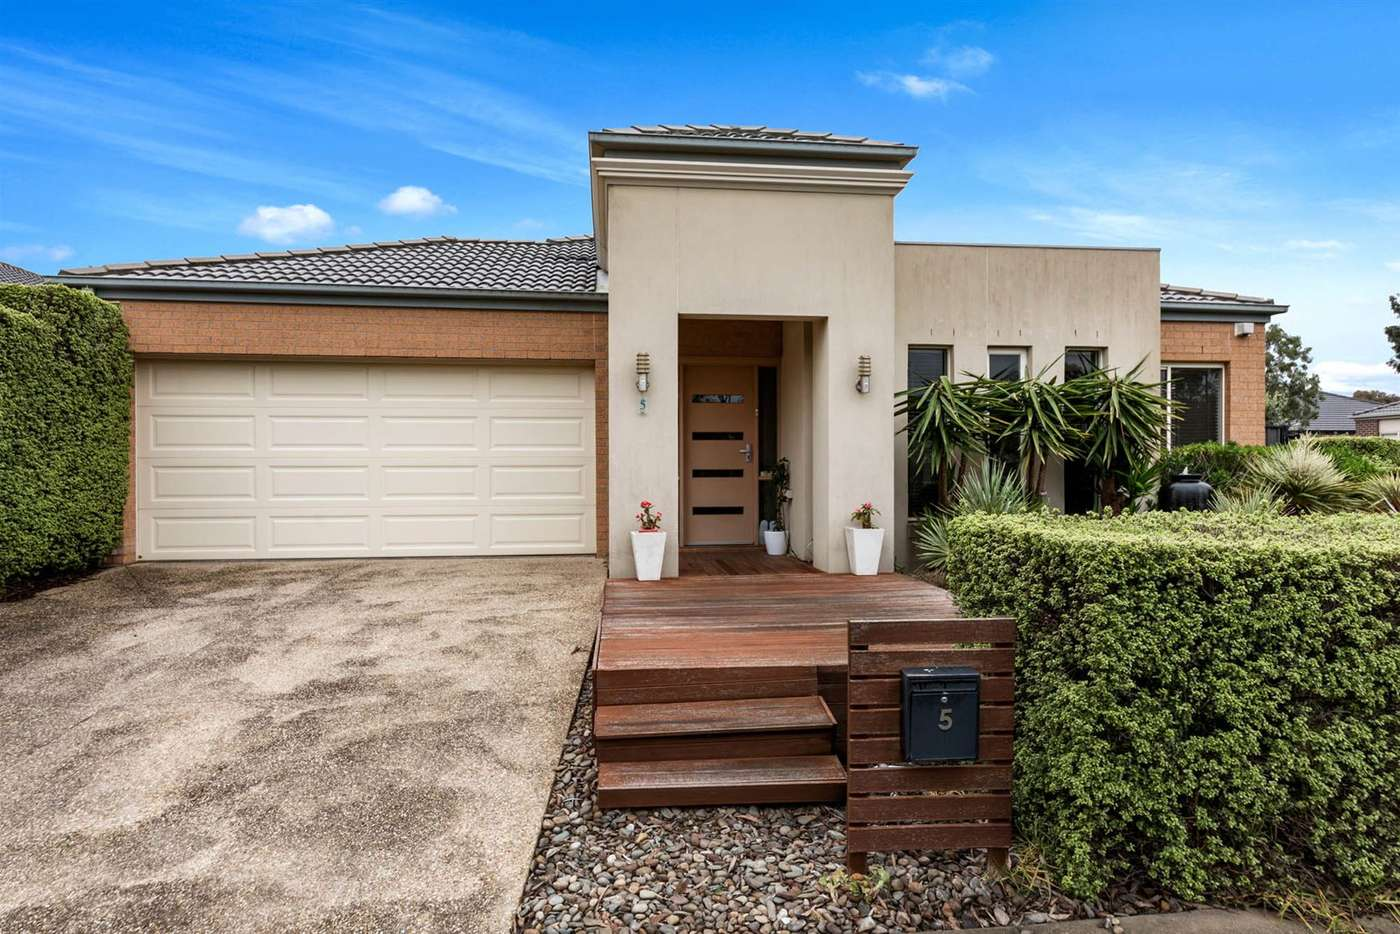 Main view of Homely house listing, 5 Camelot Drive, Tarneit VIC 3029